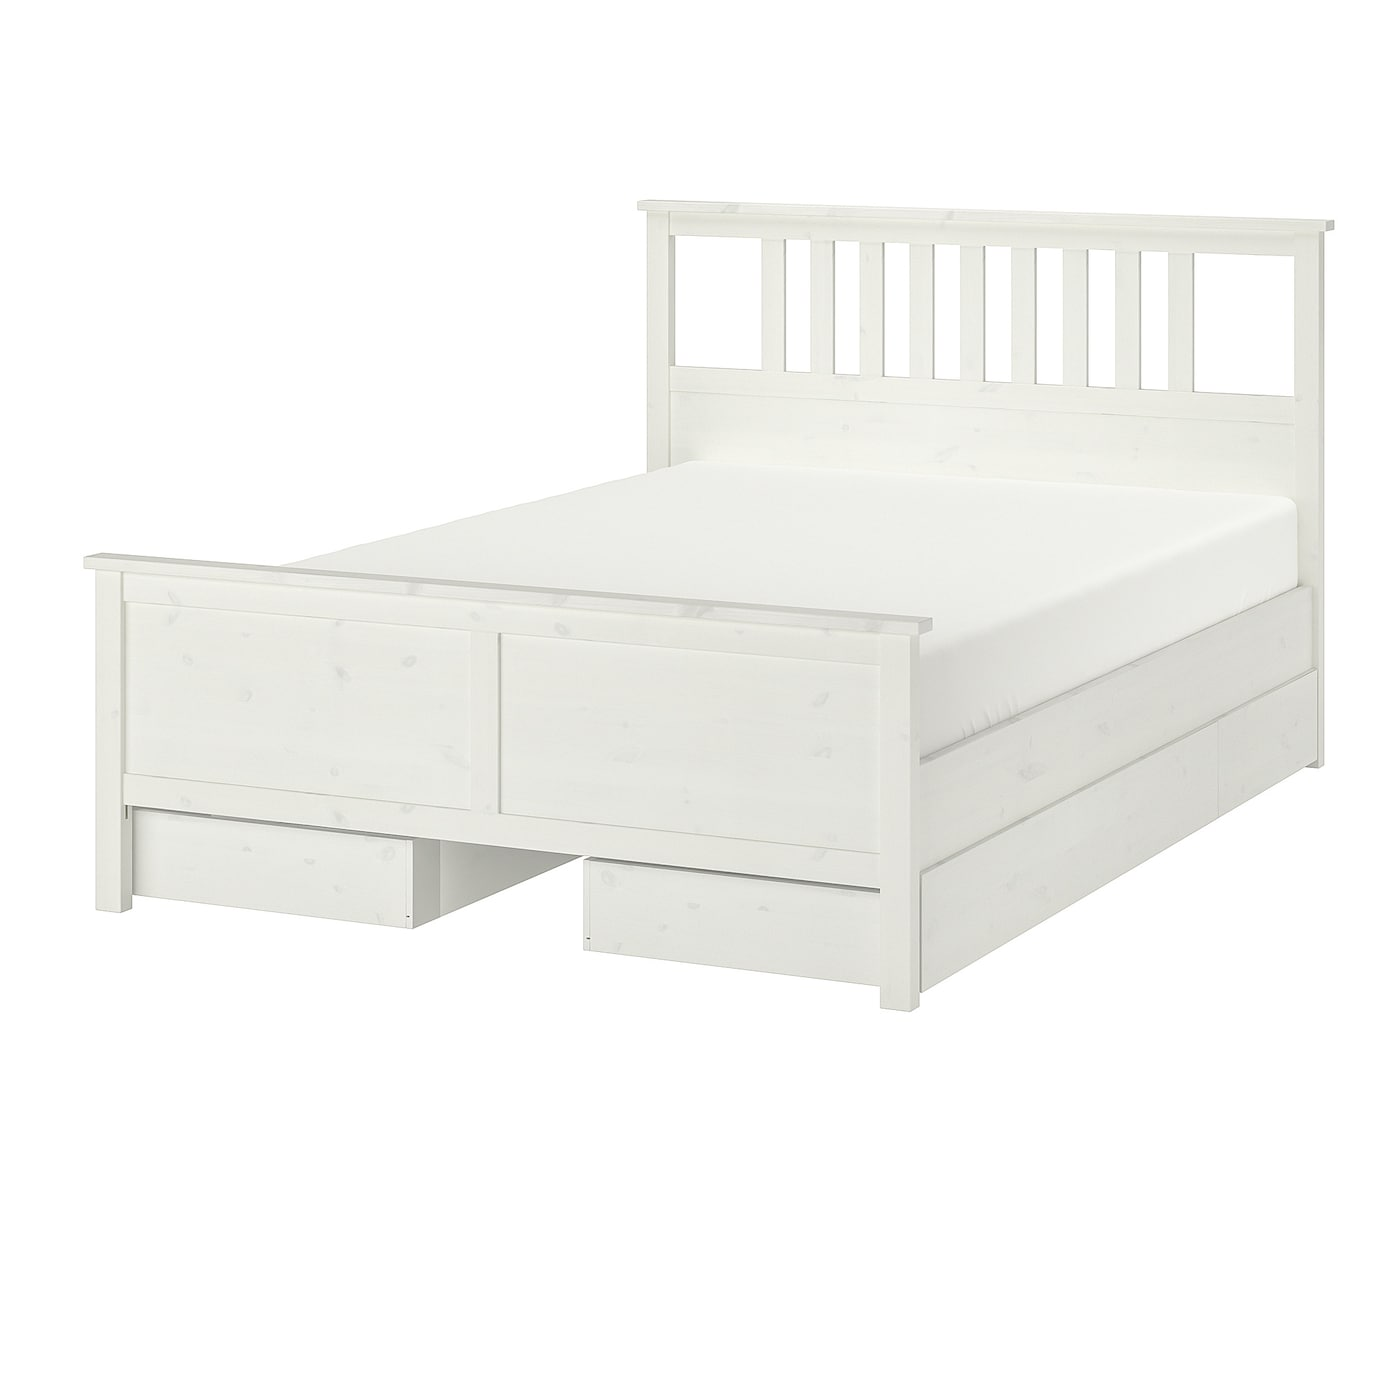 Hemnes White Stain Luroy Bed With 4 Storage Boxes Standard Double Ikea